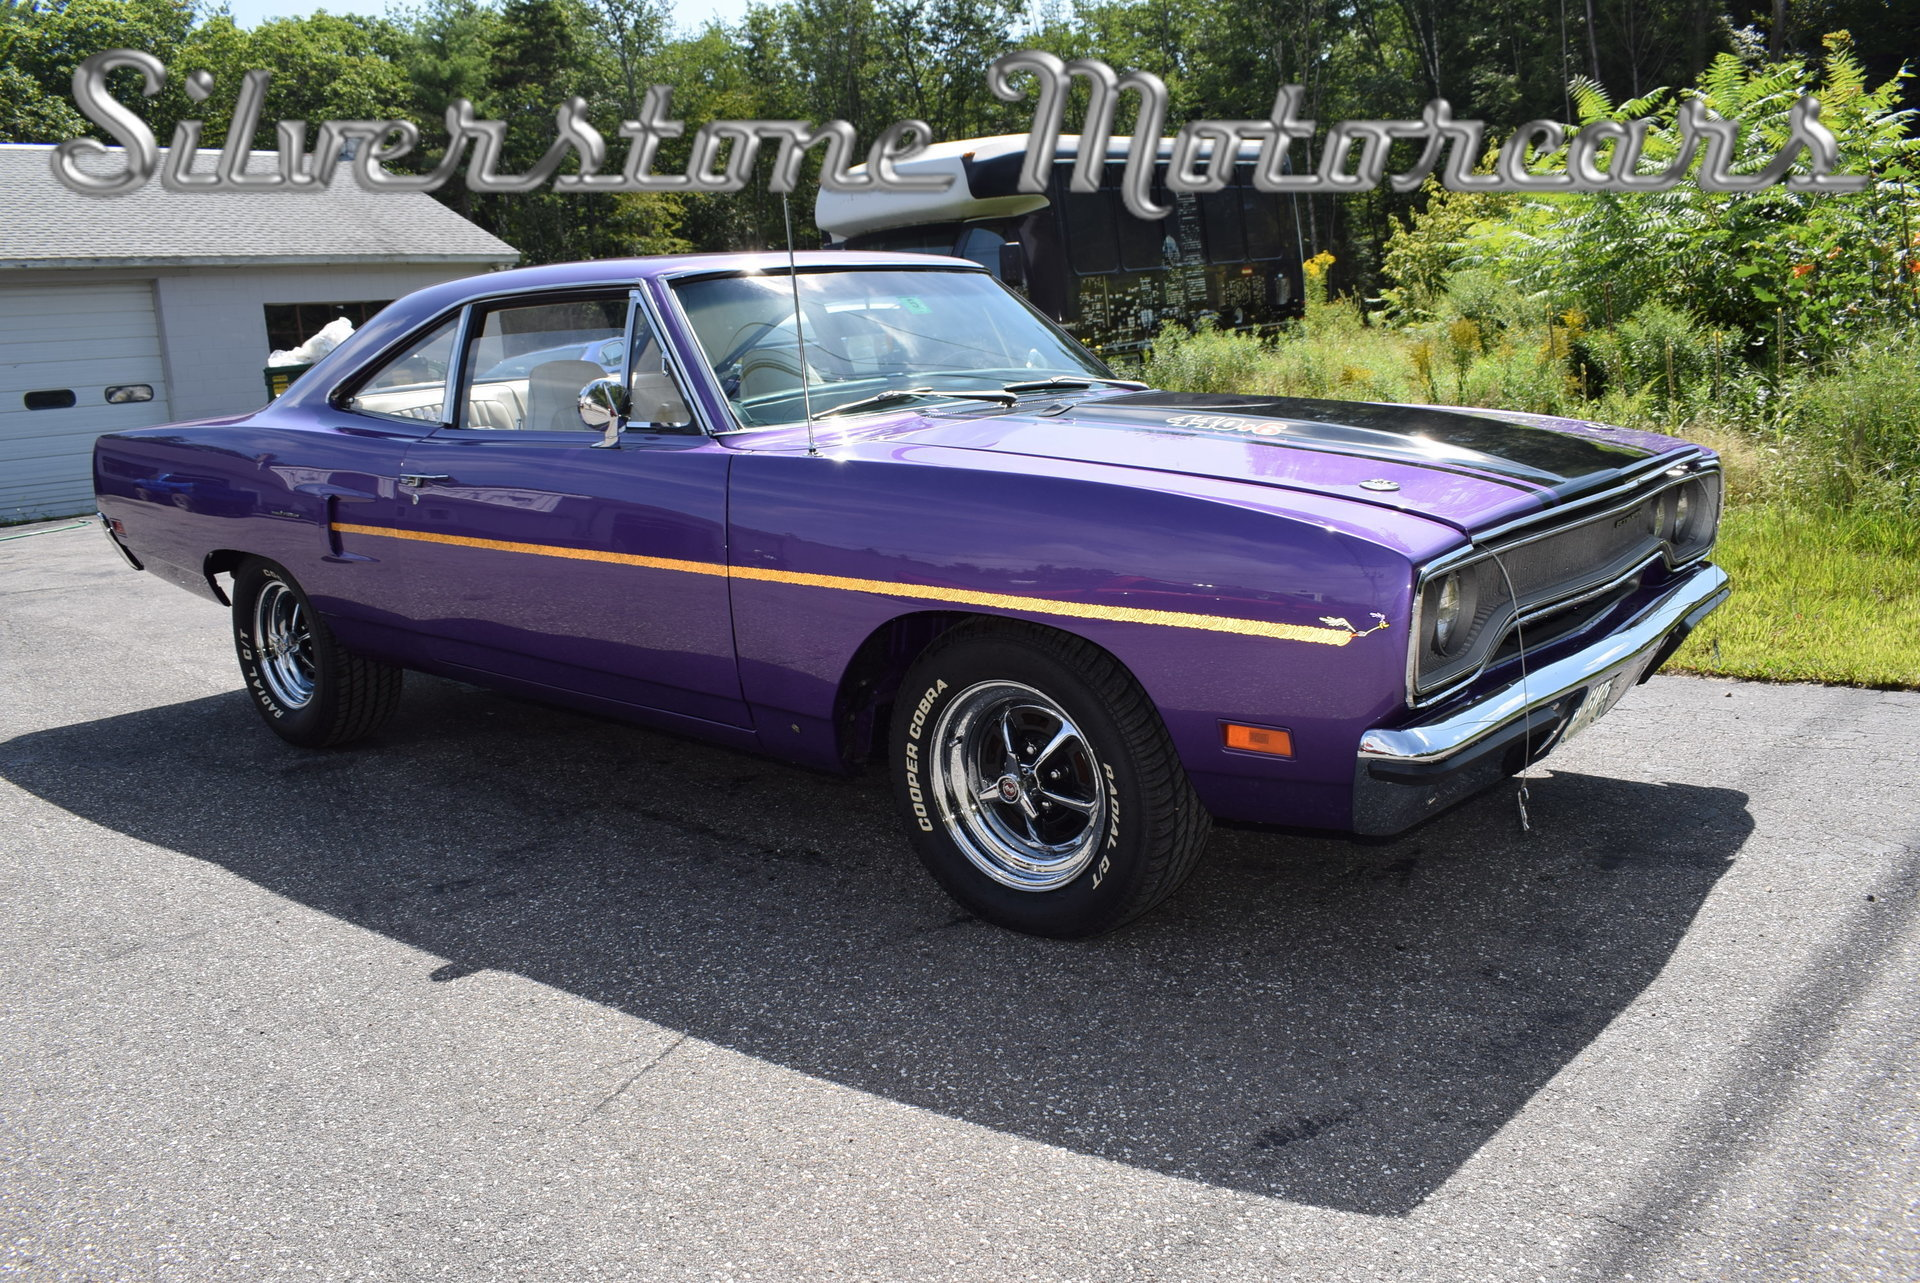 1970 plymouth road runner 440 6 pack for sale 99050 mcg. Black Bedroom Furniture Sets. Home Design Ideas